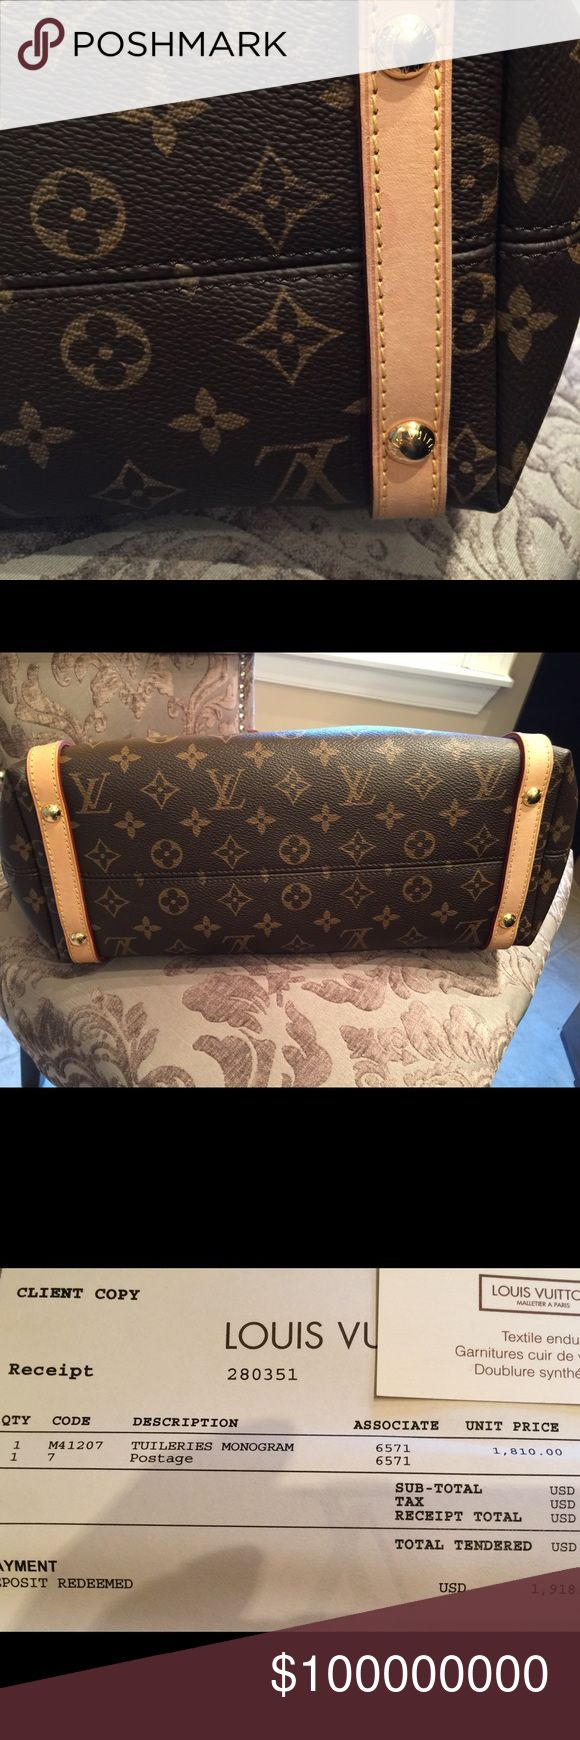 Additional photos for Authentic Louis Vuitton  Additional photos for Louis Vuitton Tuileries tote bag. Bags Shoulder Bags